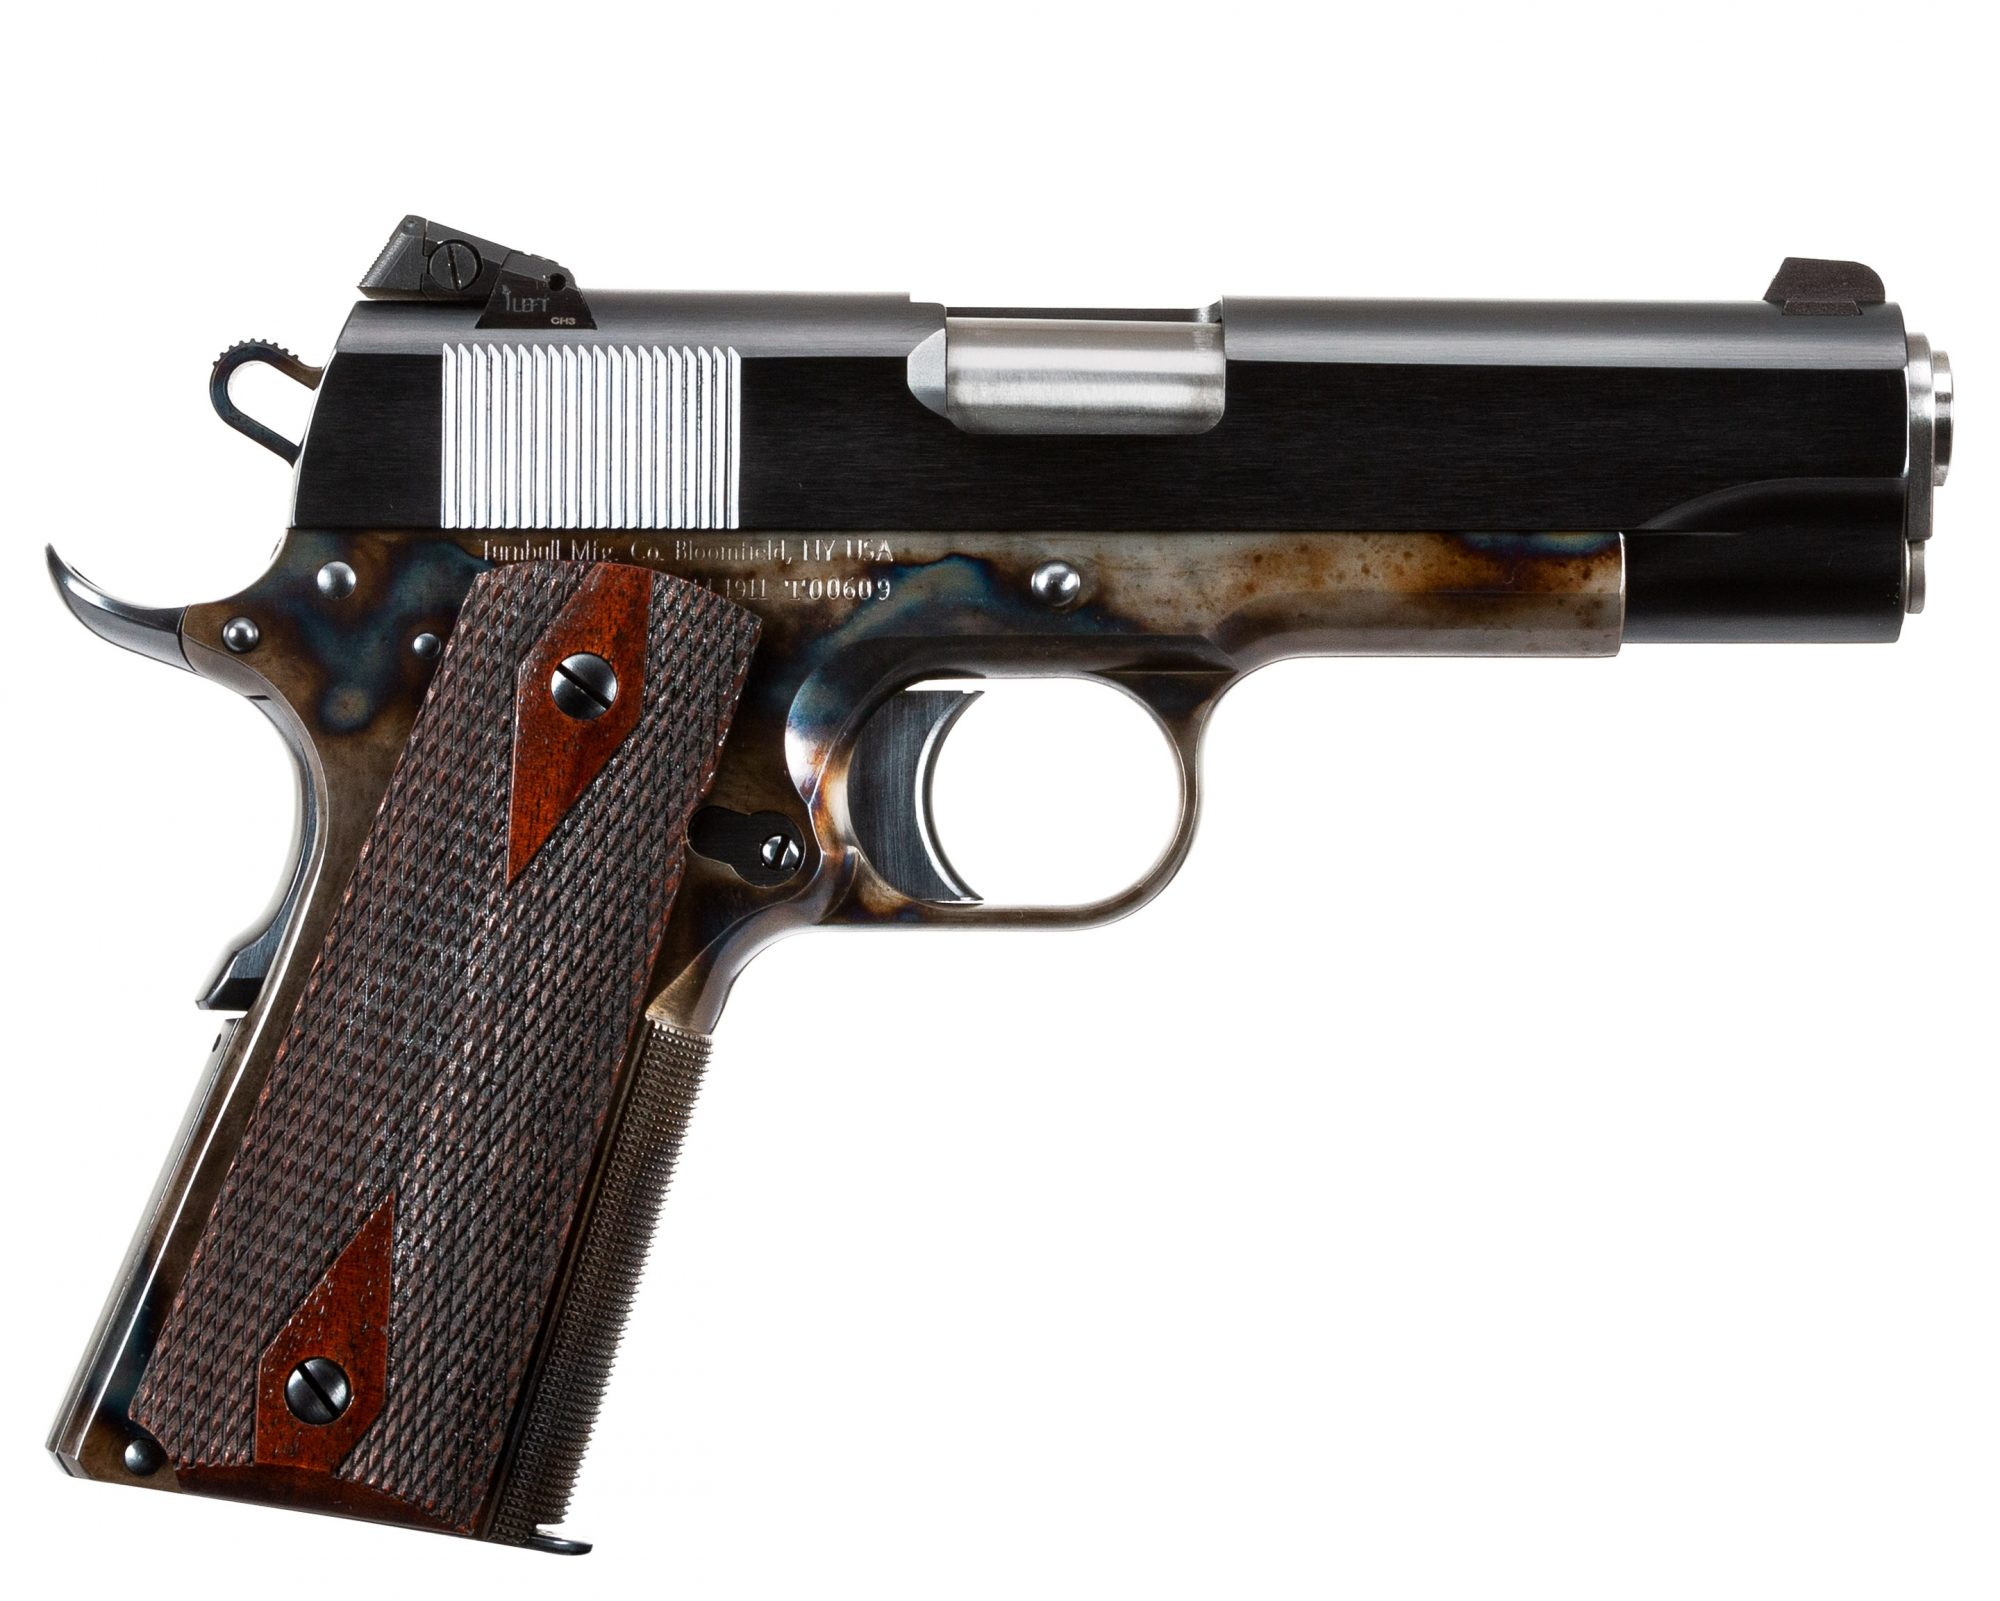 Photo of a new Turnbull Model 1911 Commander, featuring bone charcoal color case hardening